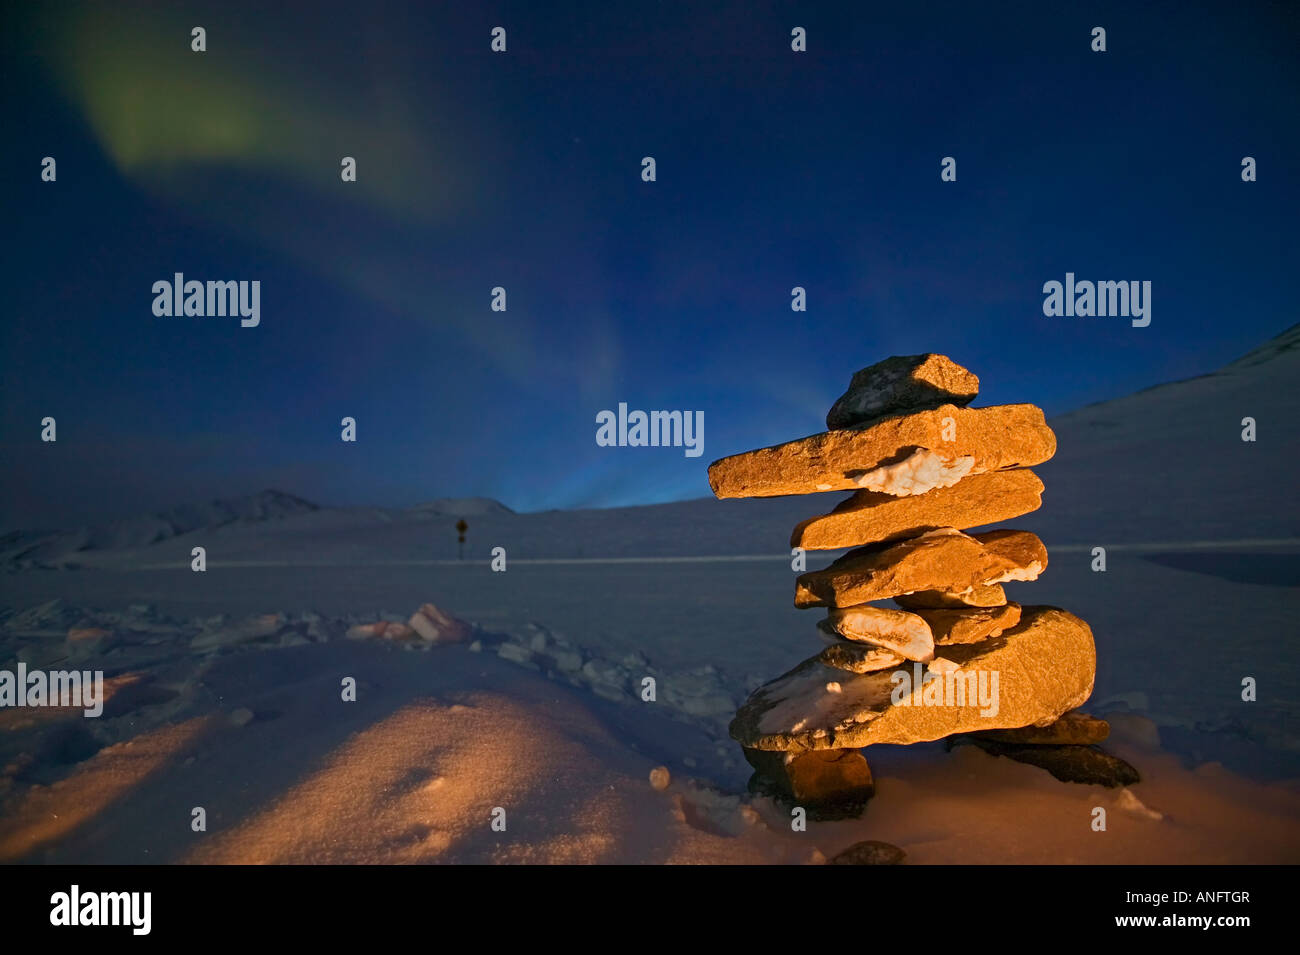 Inukshuk on Chandalar Shelf in winter with Northern Light, Aurora Borealis in background. Northern Canada. - Stock Image